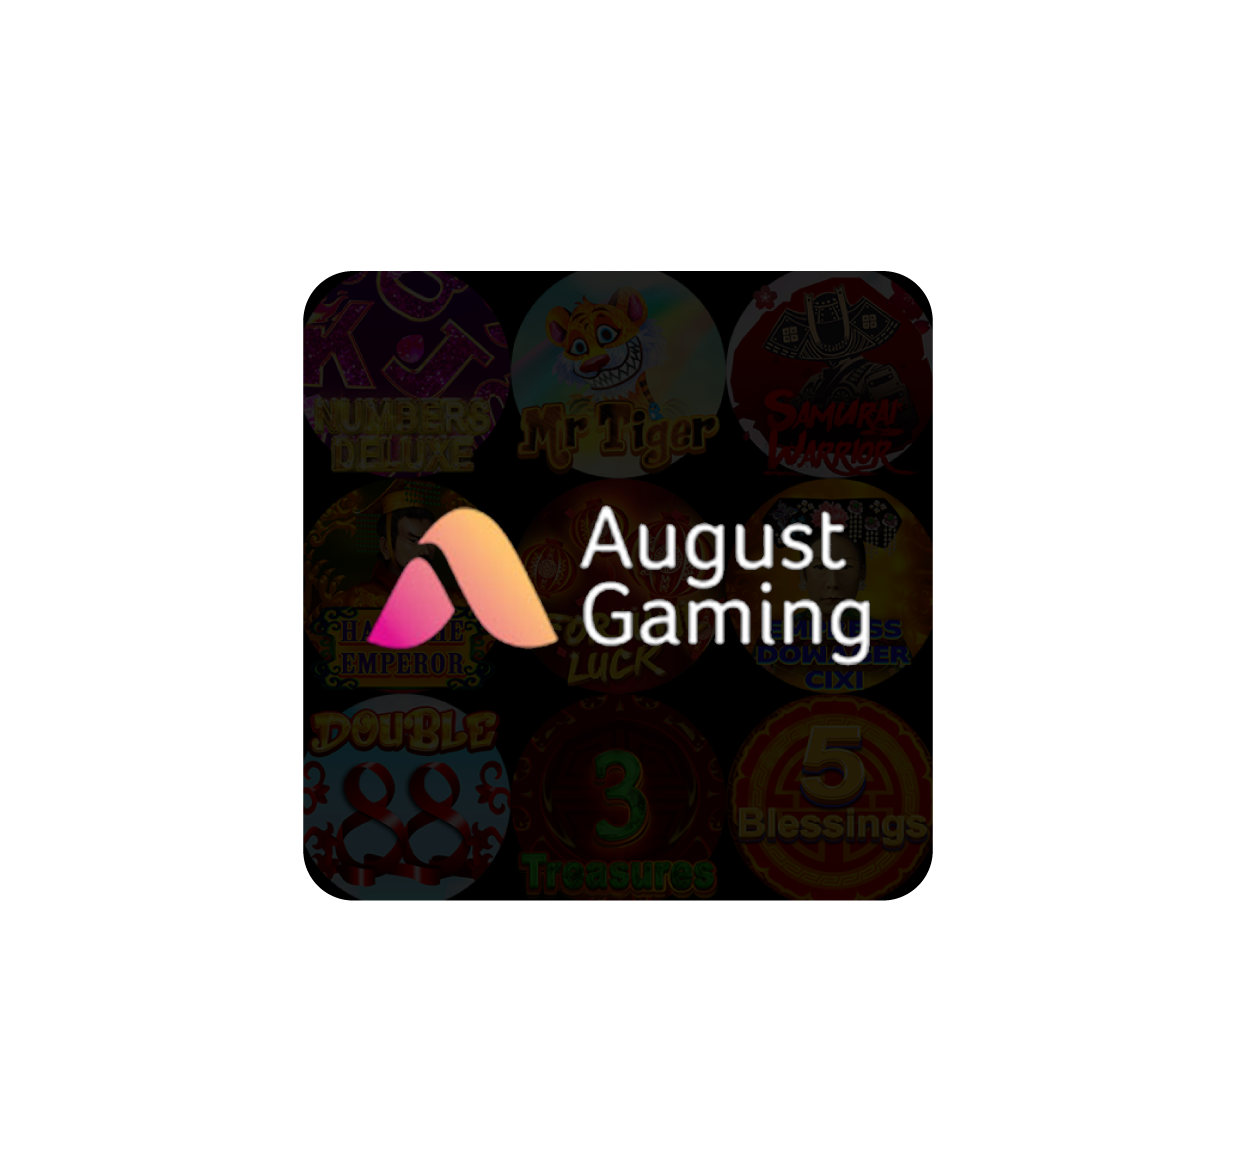 AugustGaming